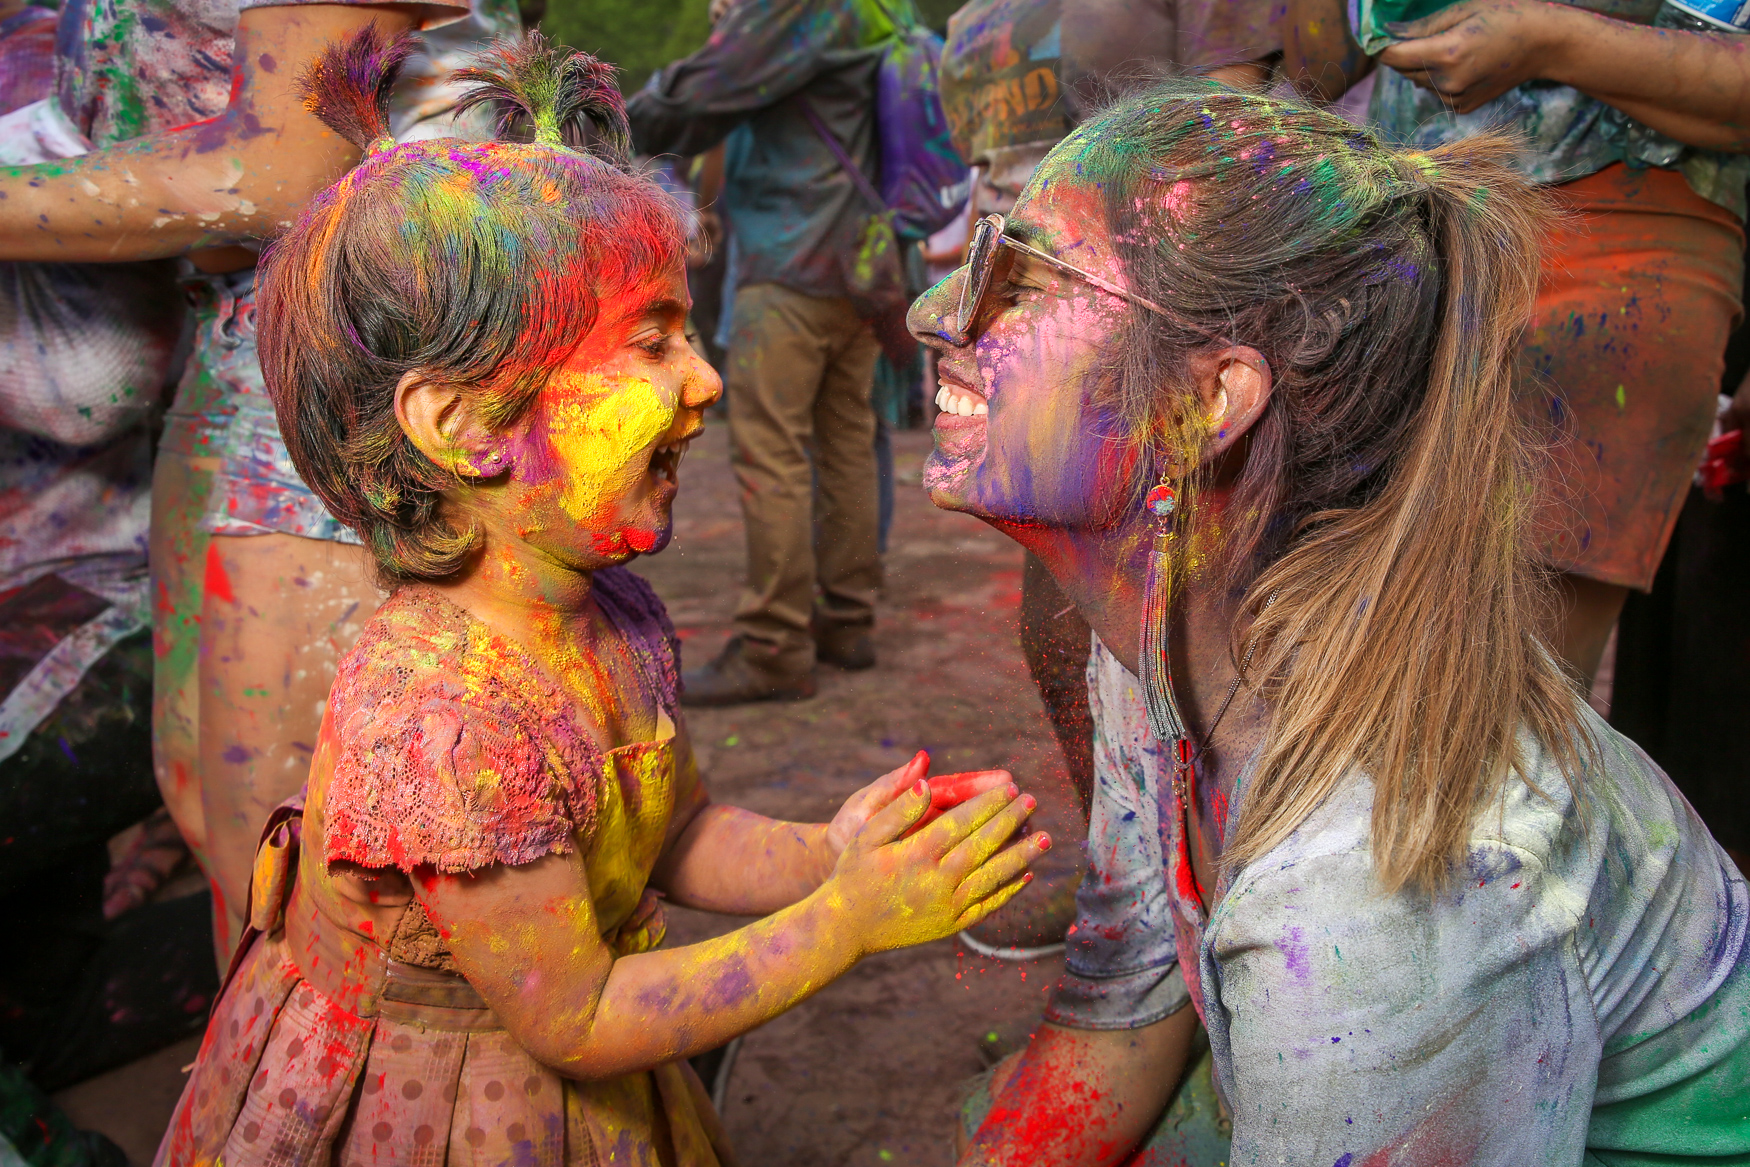 Come celebrate the ancient Indian festival of color, love and friendship in a family-friendly environment. (Image: Amanda Andrade-Rhoades/ DC Refined)